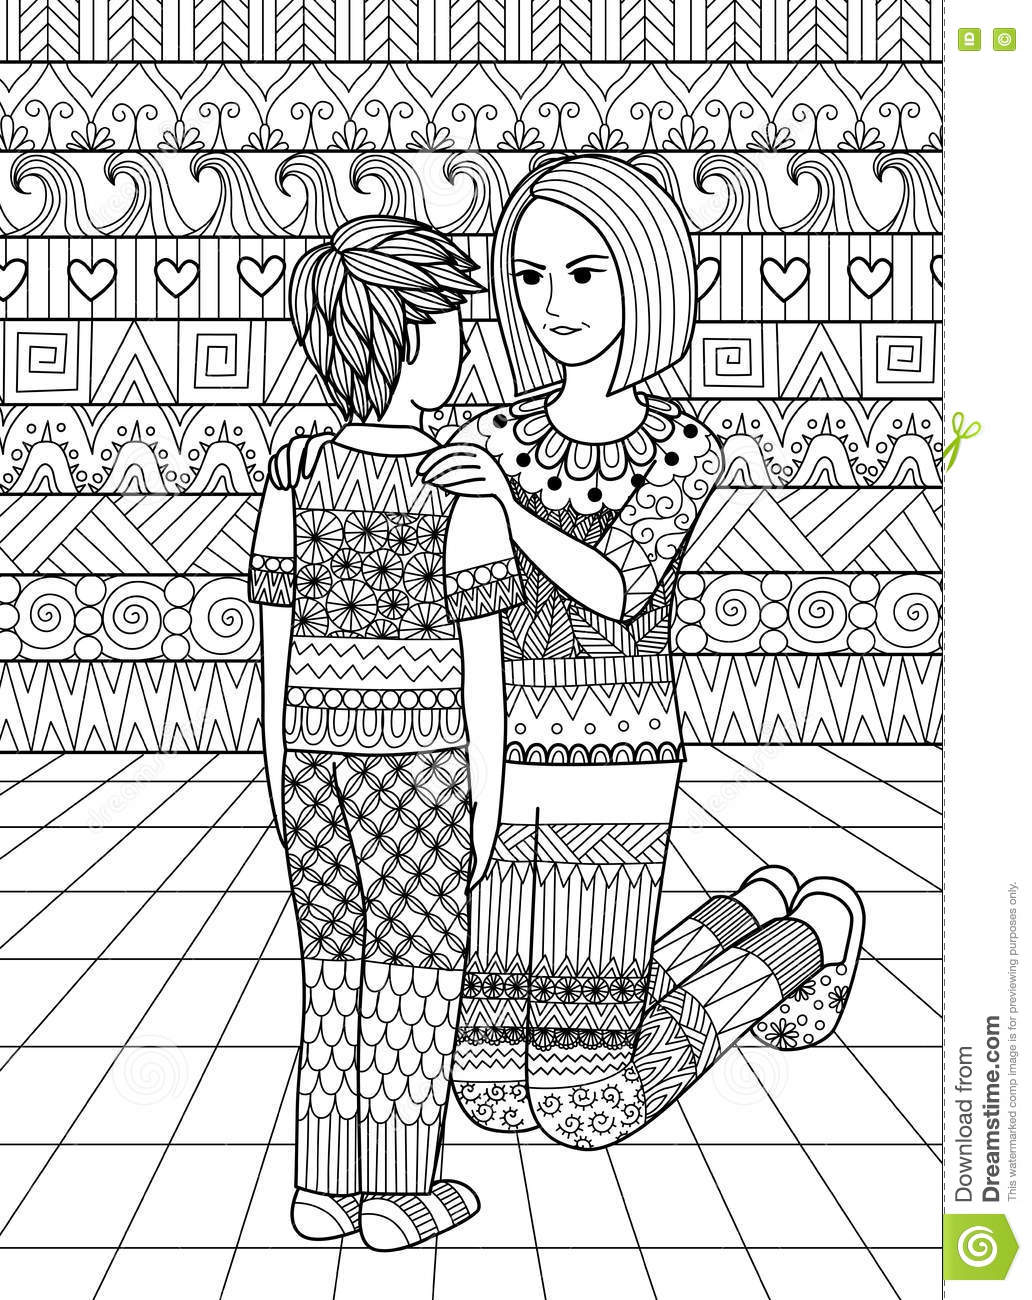 The coloring book clean - Clean Lines Doodle Design Of Mom Saying No To Her Son Design For Adult Coloring